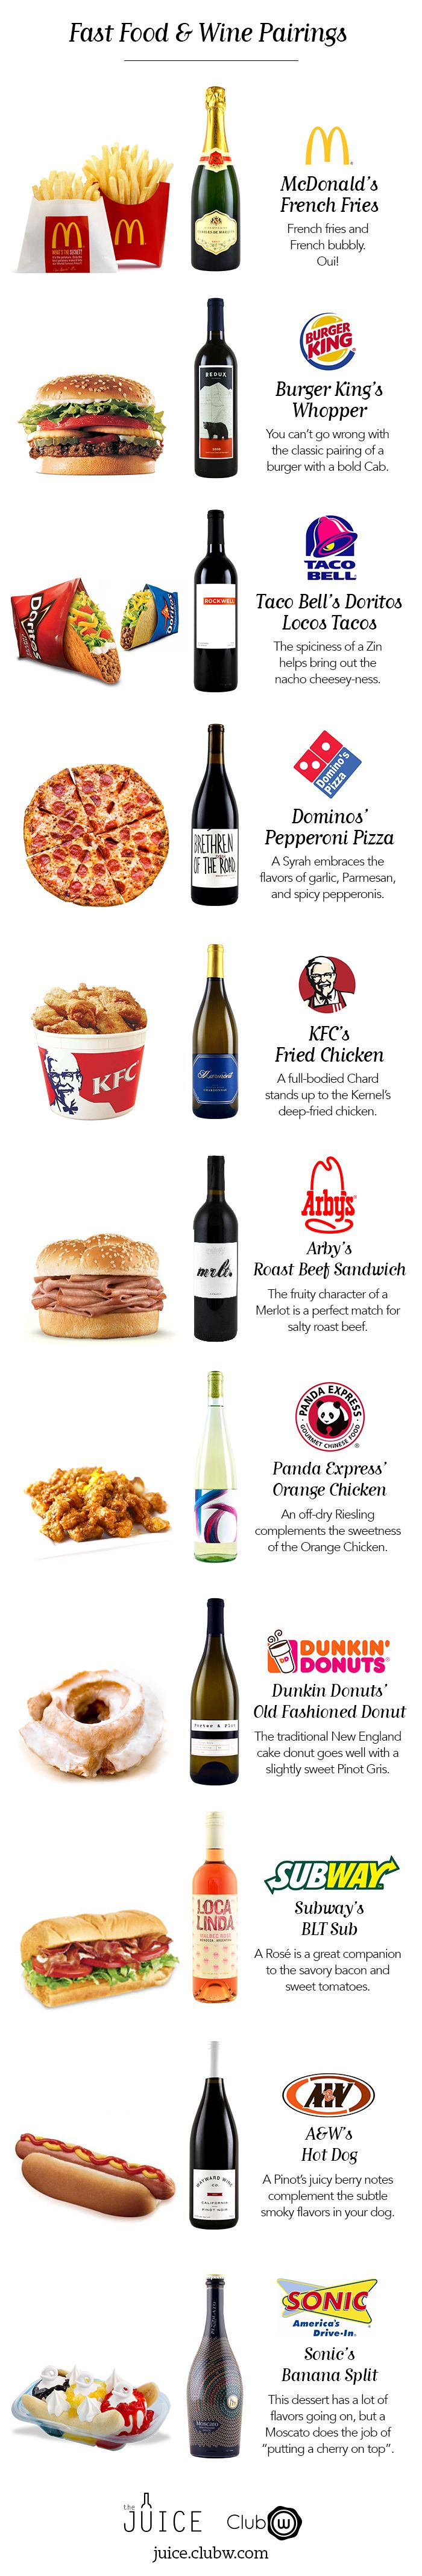 Wine Pairing Guide: Fast Food